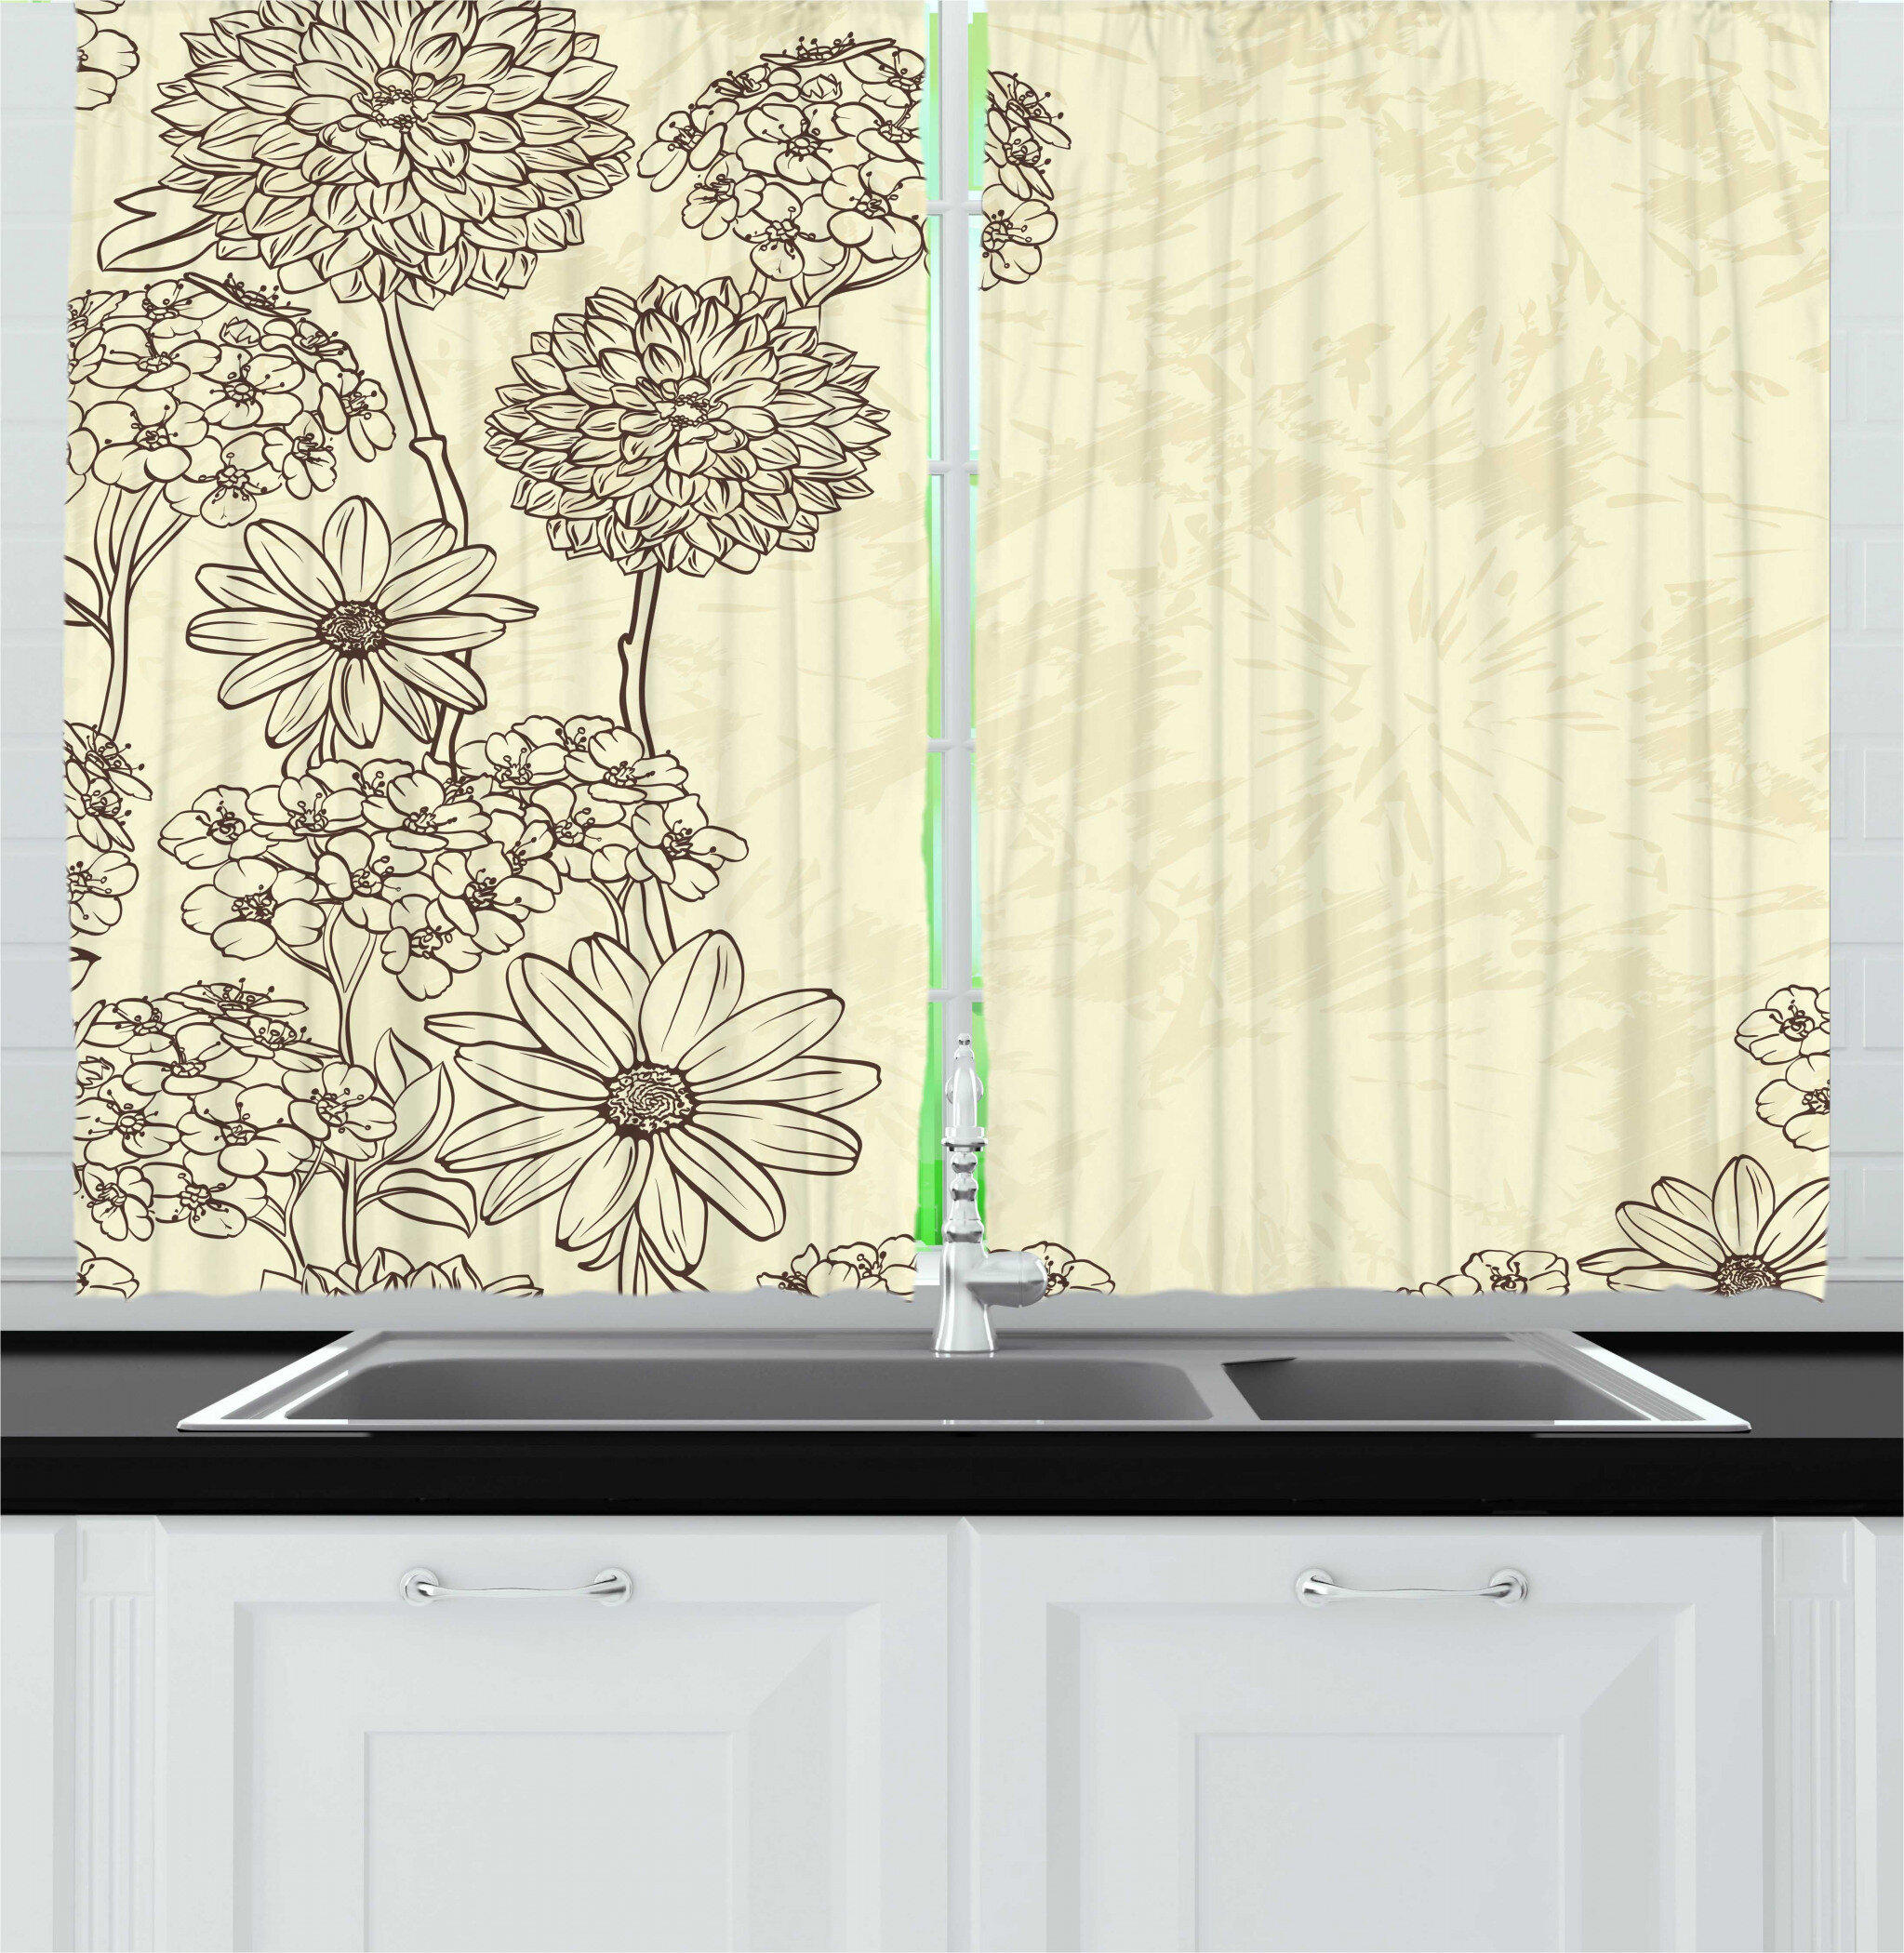 East Urban Home 2 Piece Floral Vintage Blooming Plantation Drawn By Hand In Retro Style Kitchen Curtain Set Wayfair